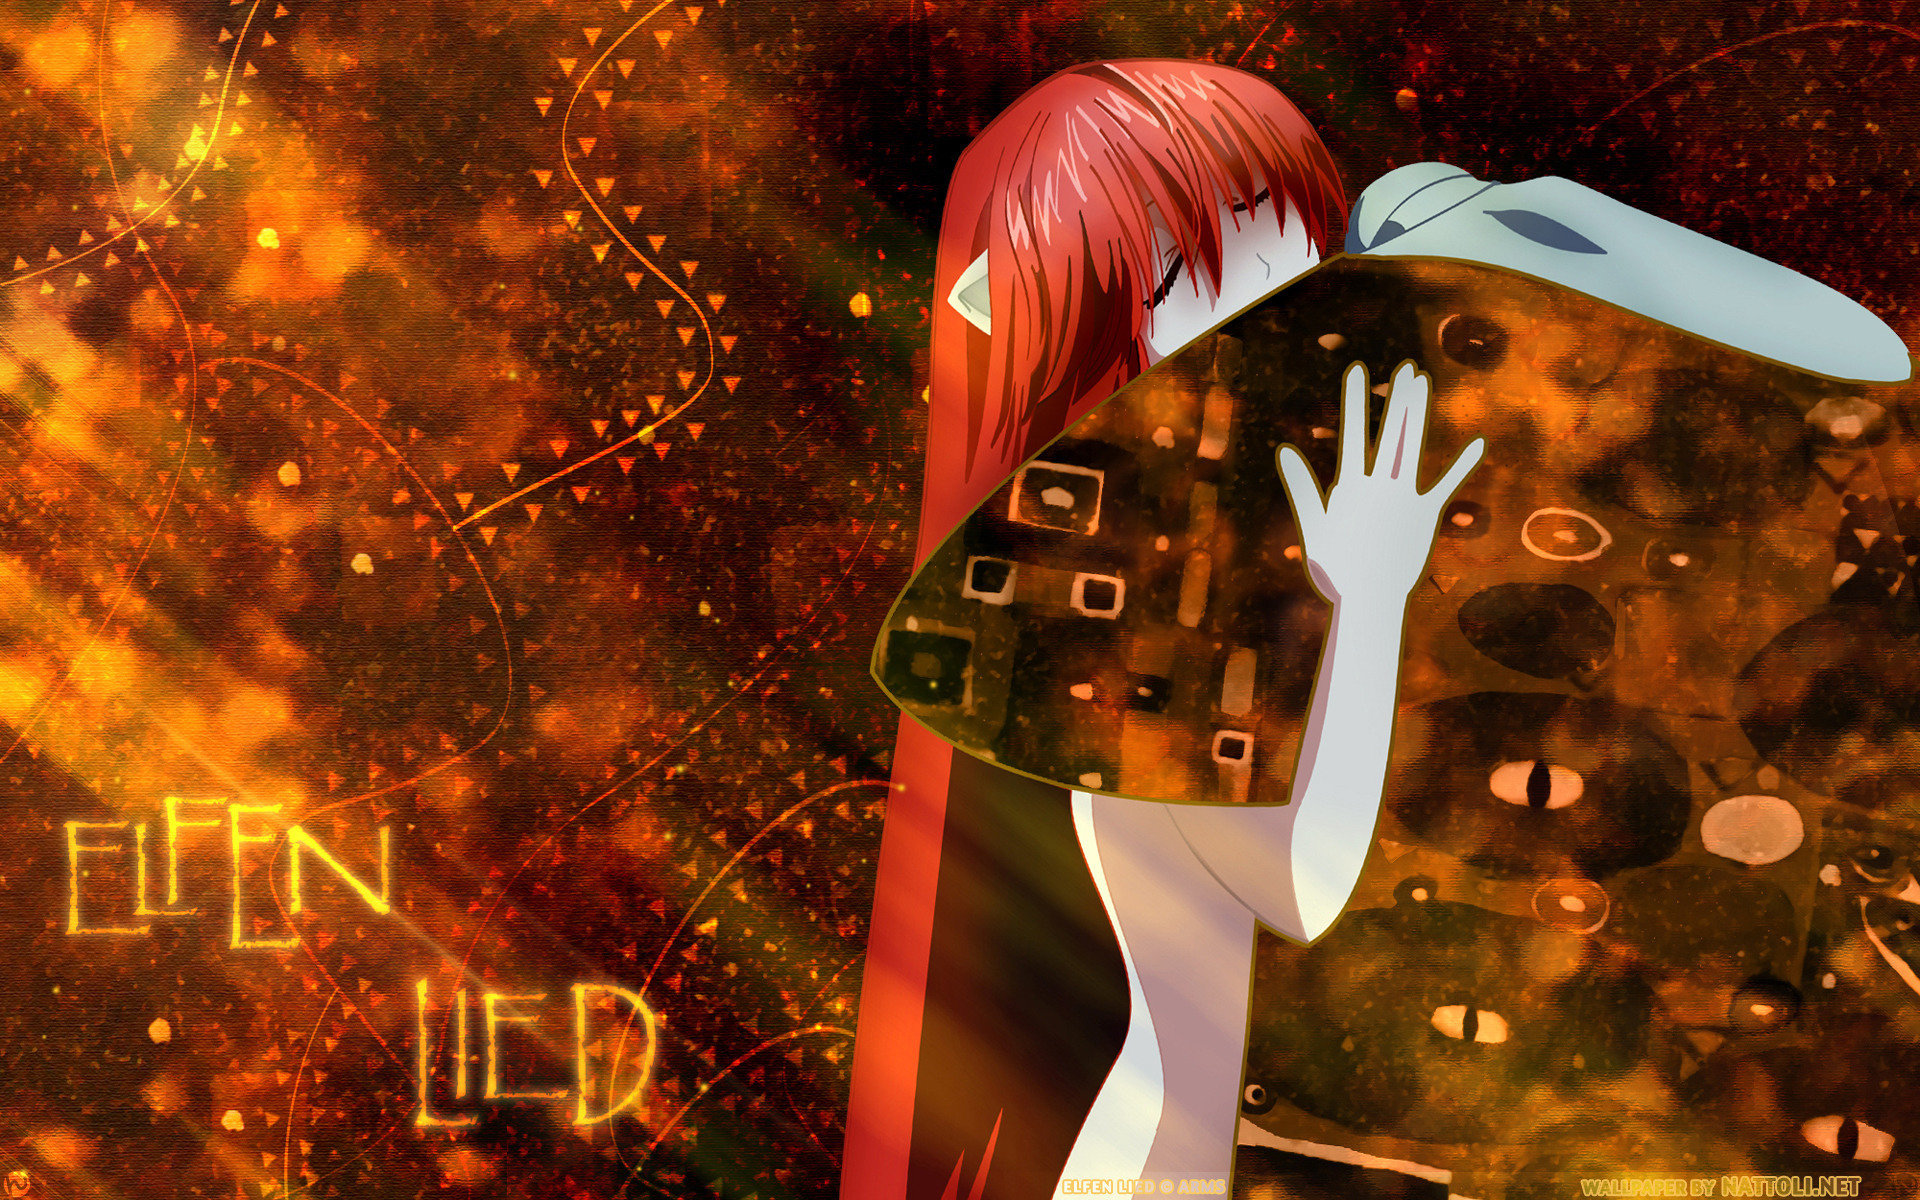 Awesome Elfen Lied free wallpaper ID:384195 for hd 1920x1200 PC